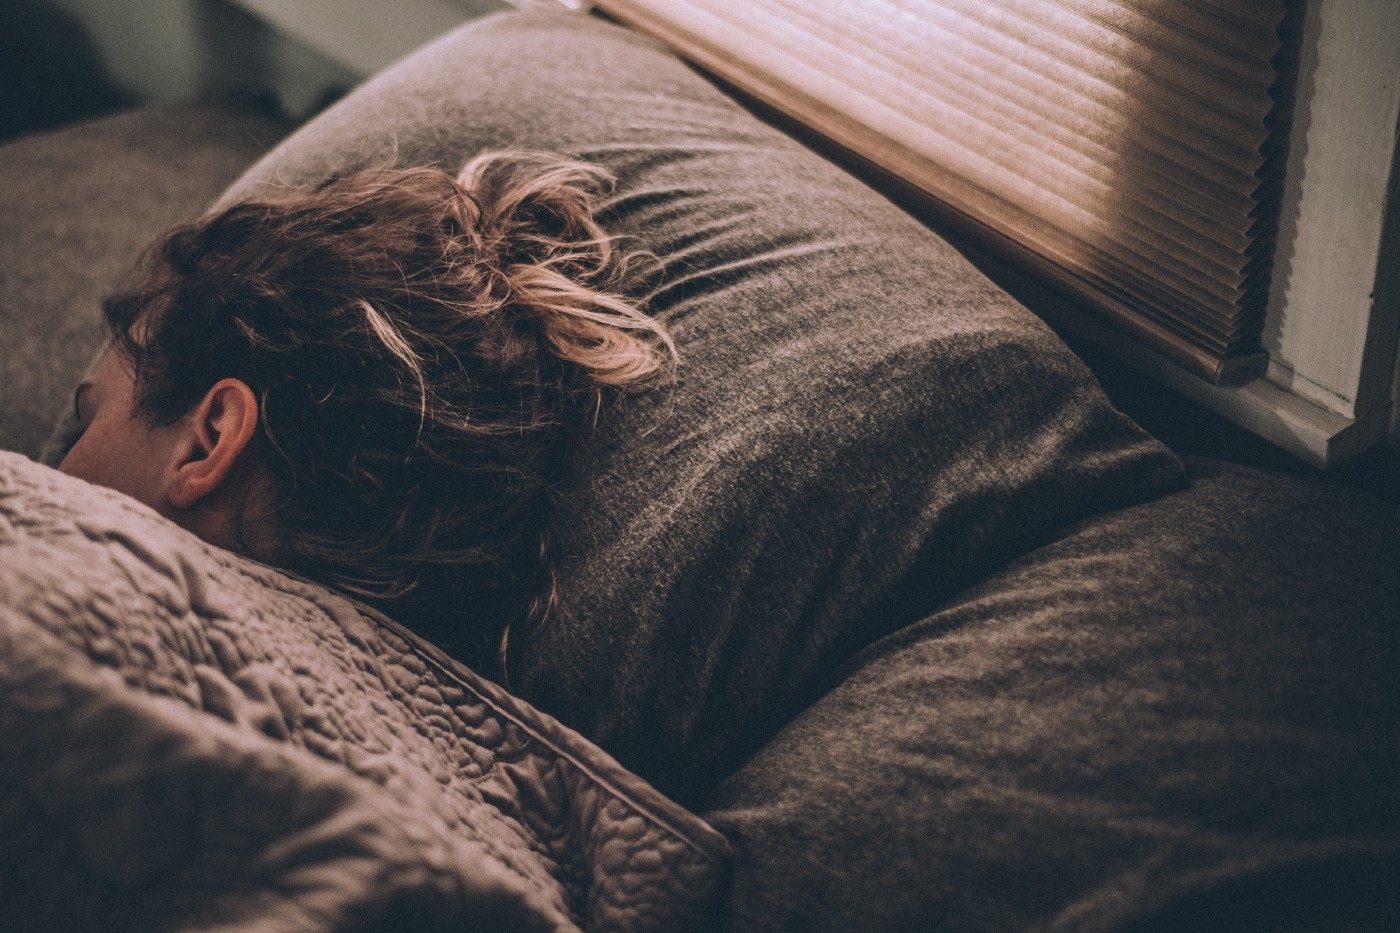 A woman have a good night's rest